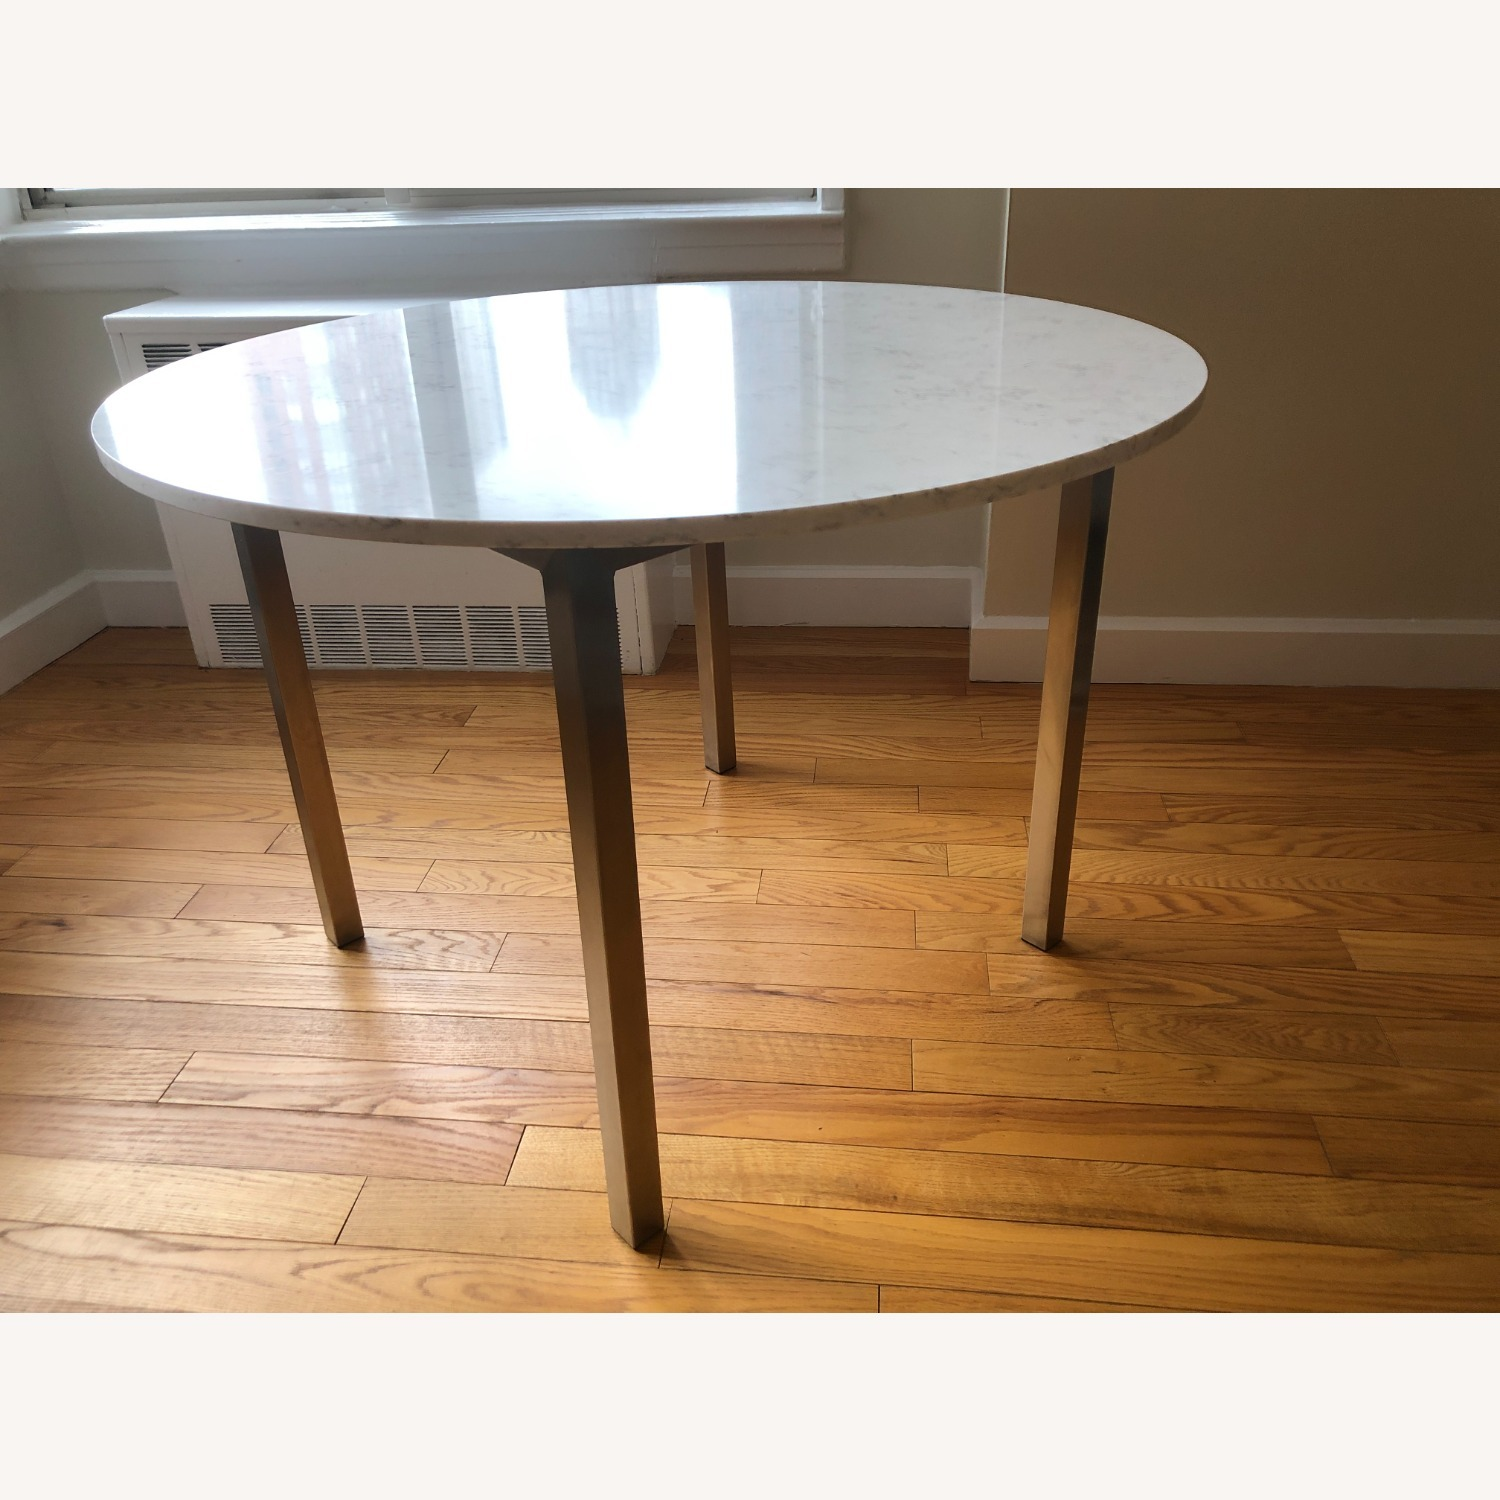 Room & Board Round Dining Table - image-2